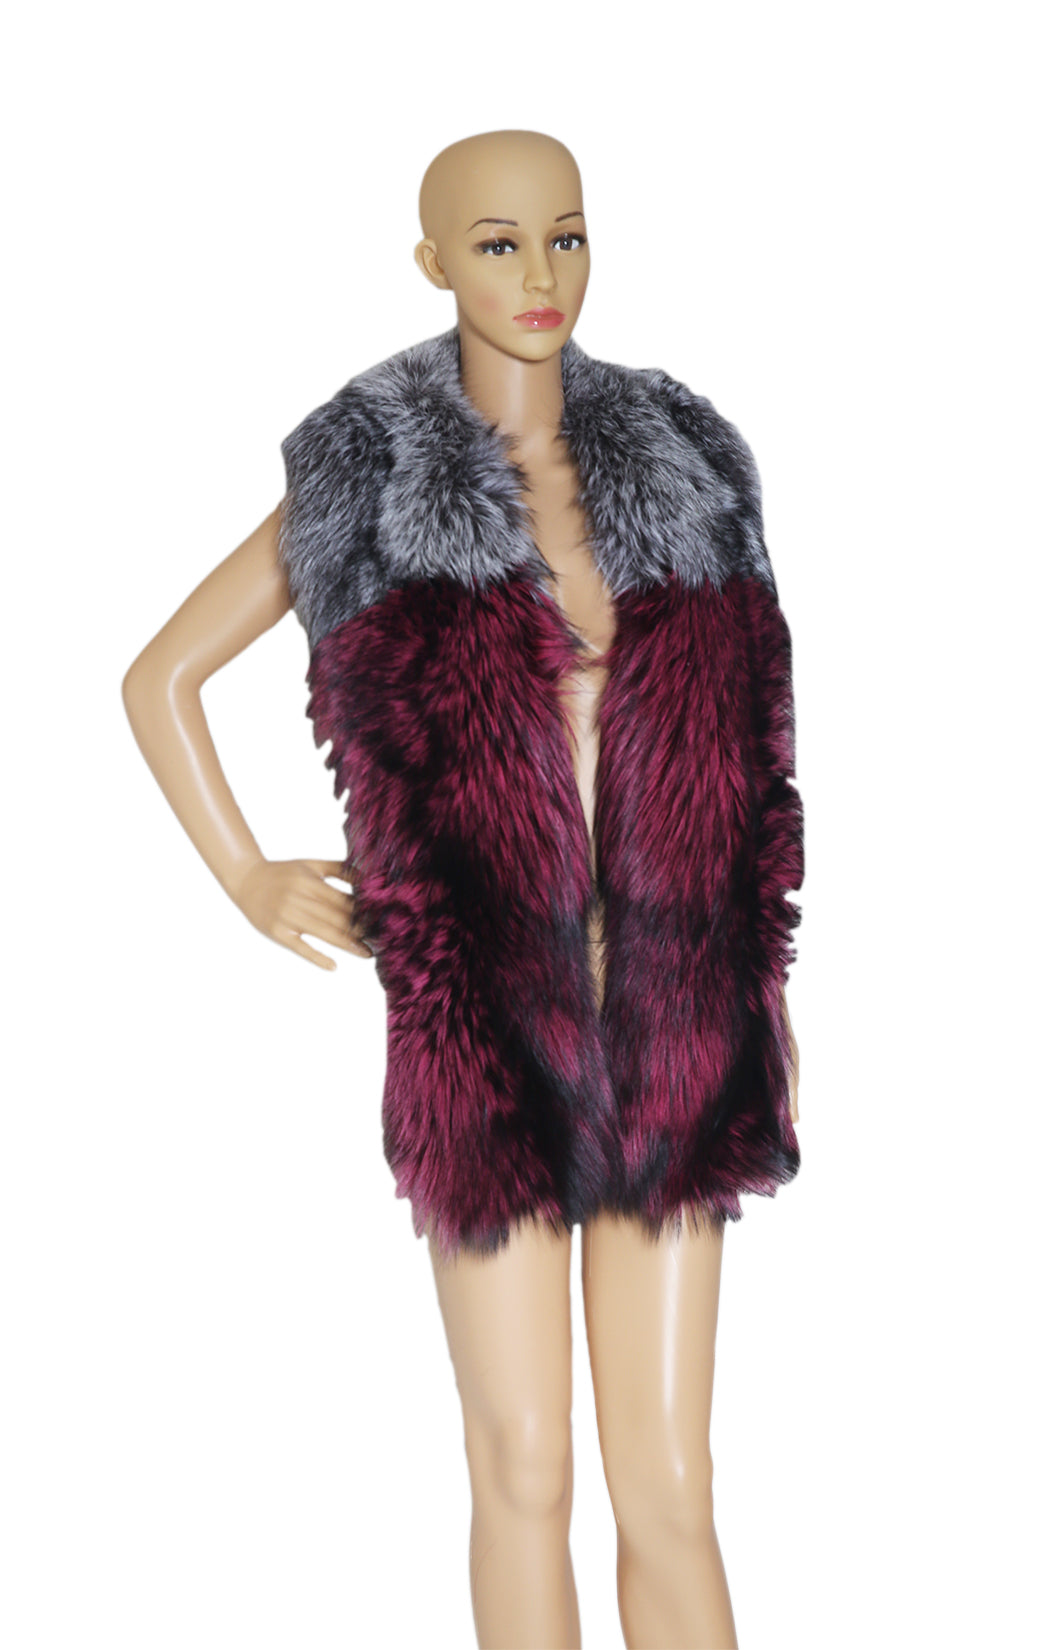 Front view of LYSA LASH Fox Fur Collar with Tags Size: 66 x 8